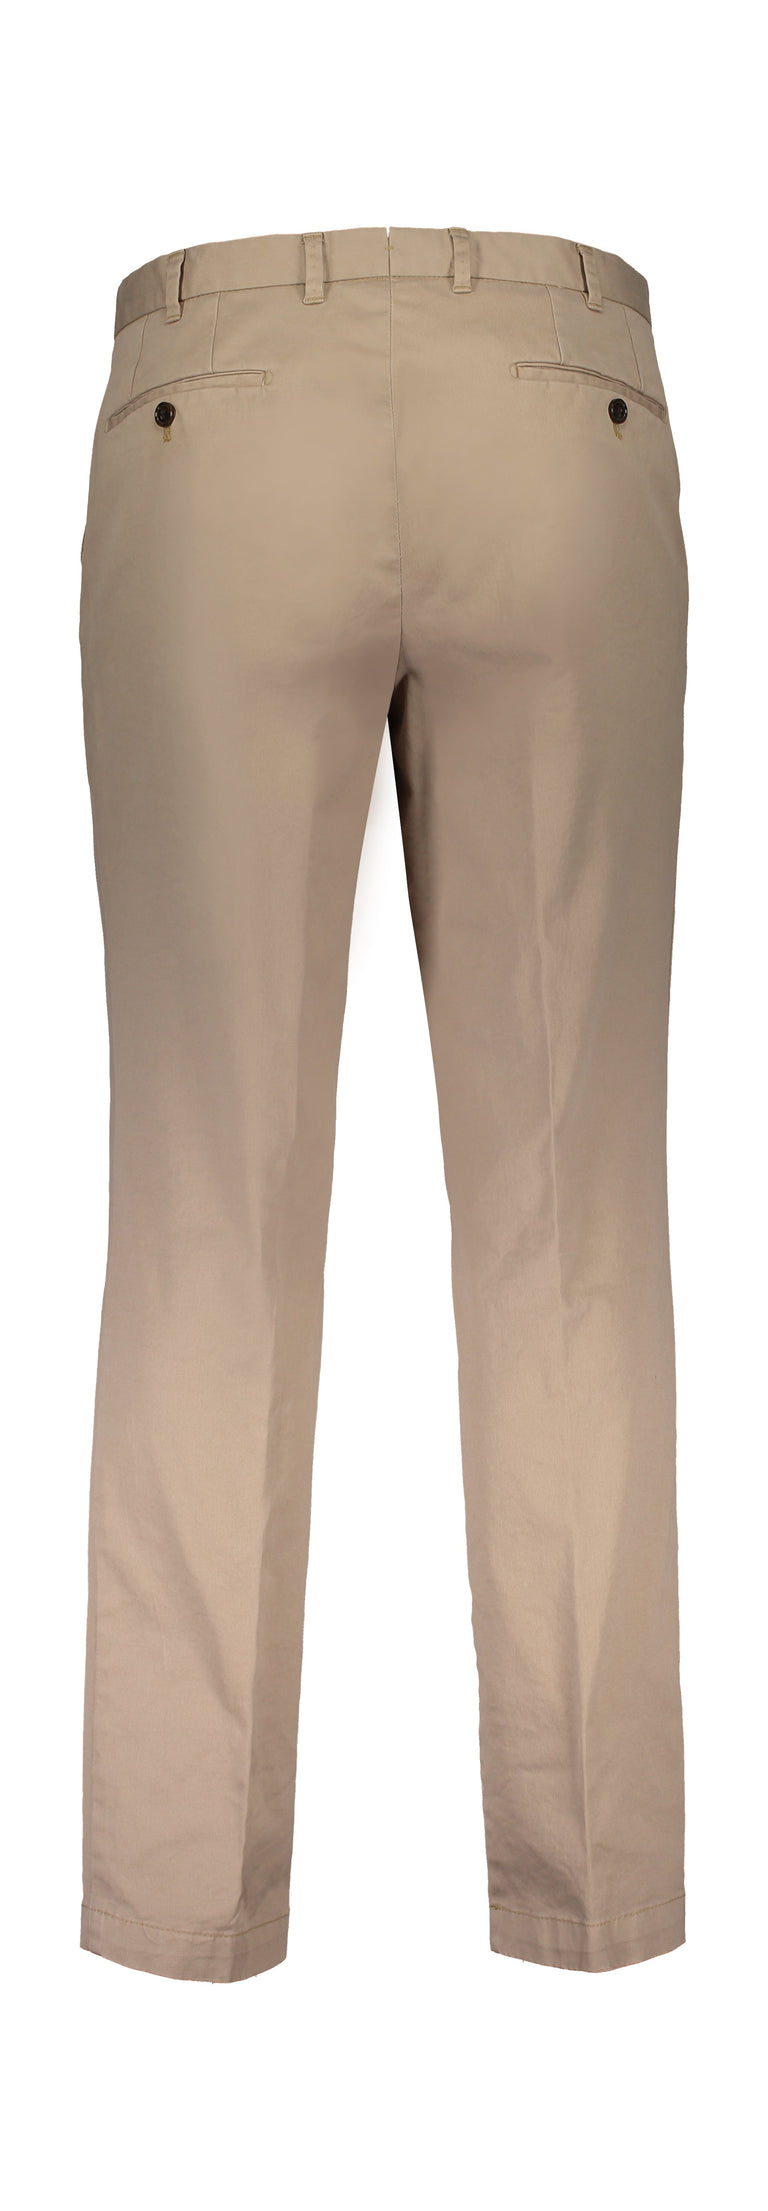 Columbus chinos in beige